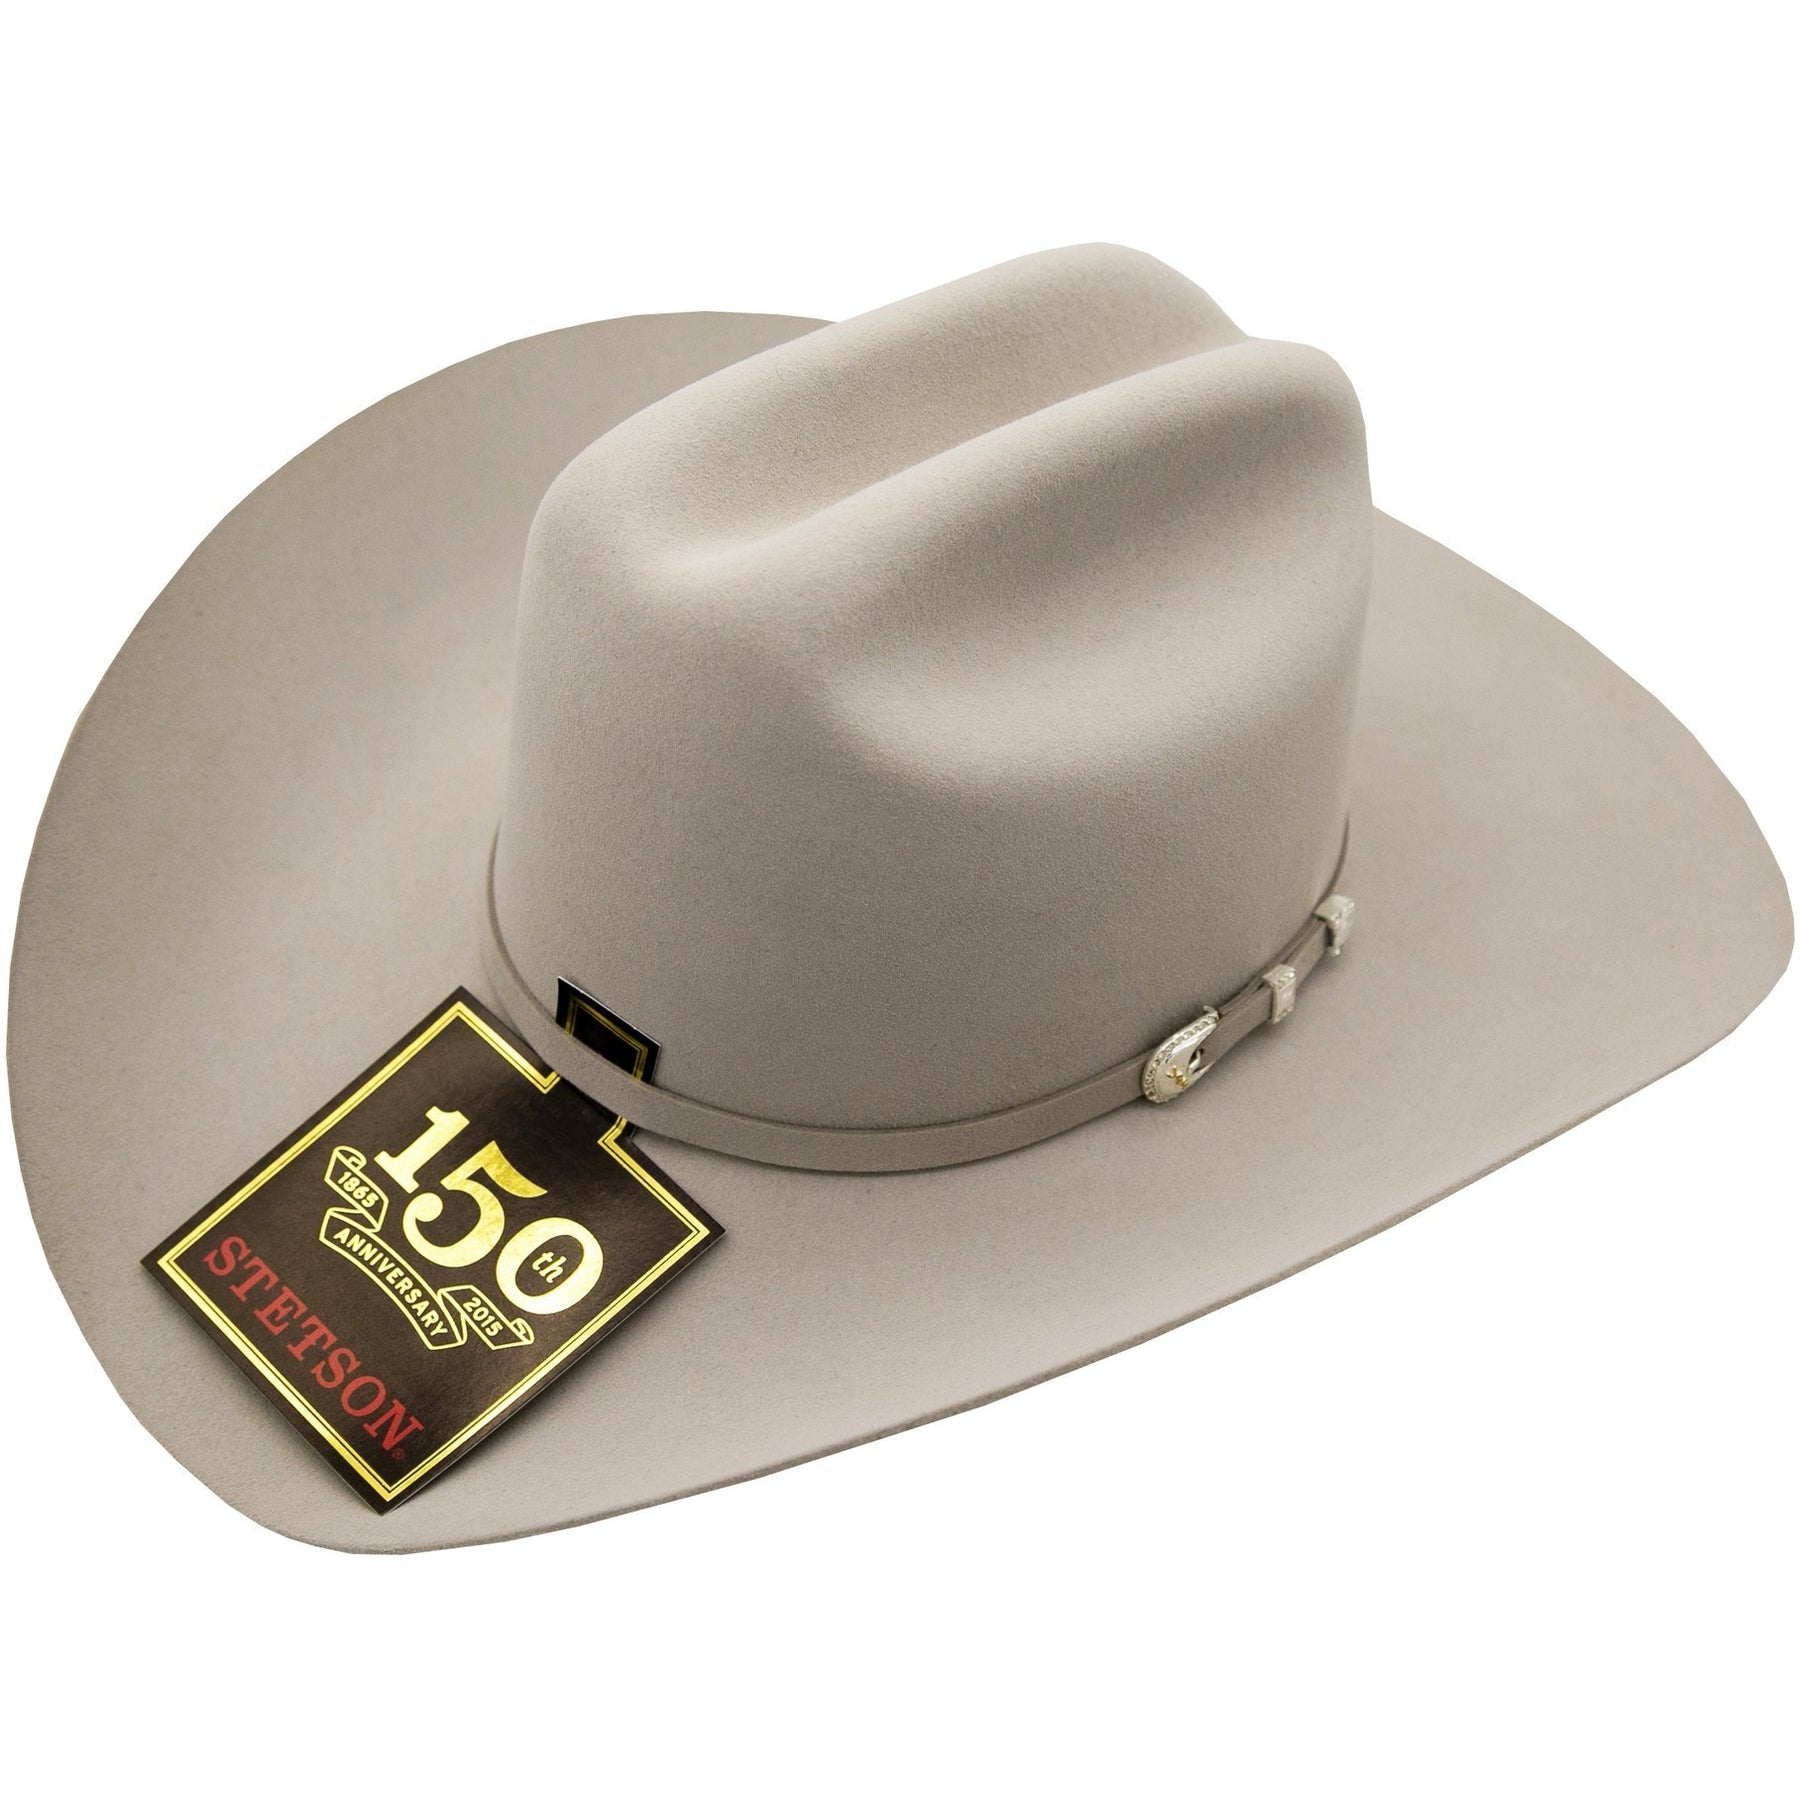 86c434b74a000 10x Stetson Shasta Felt Hat Mist Gray Handmade In The USA Stetson ...